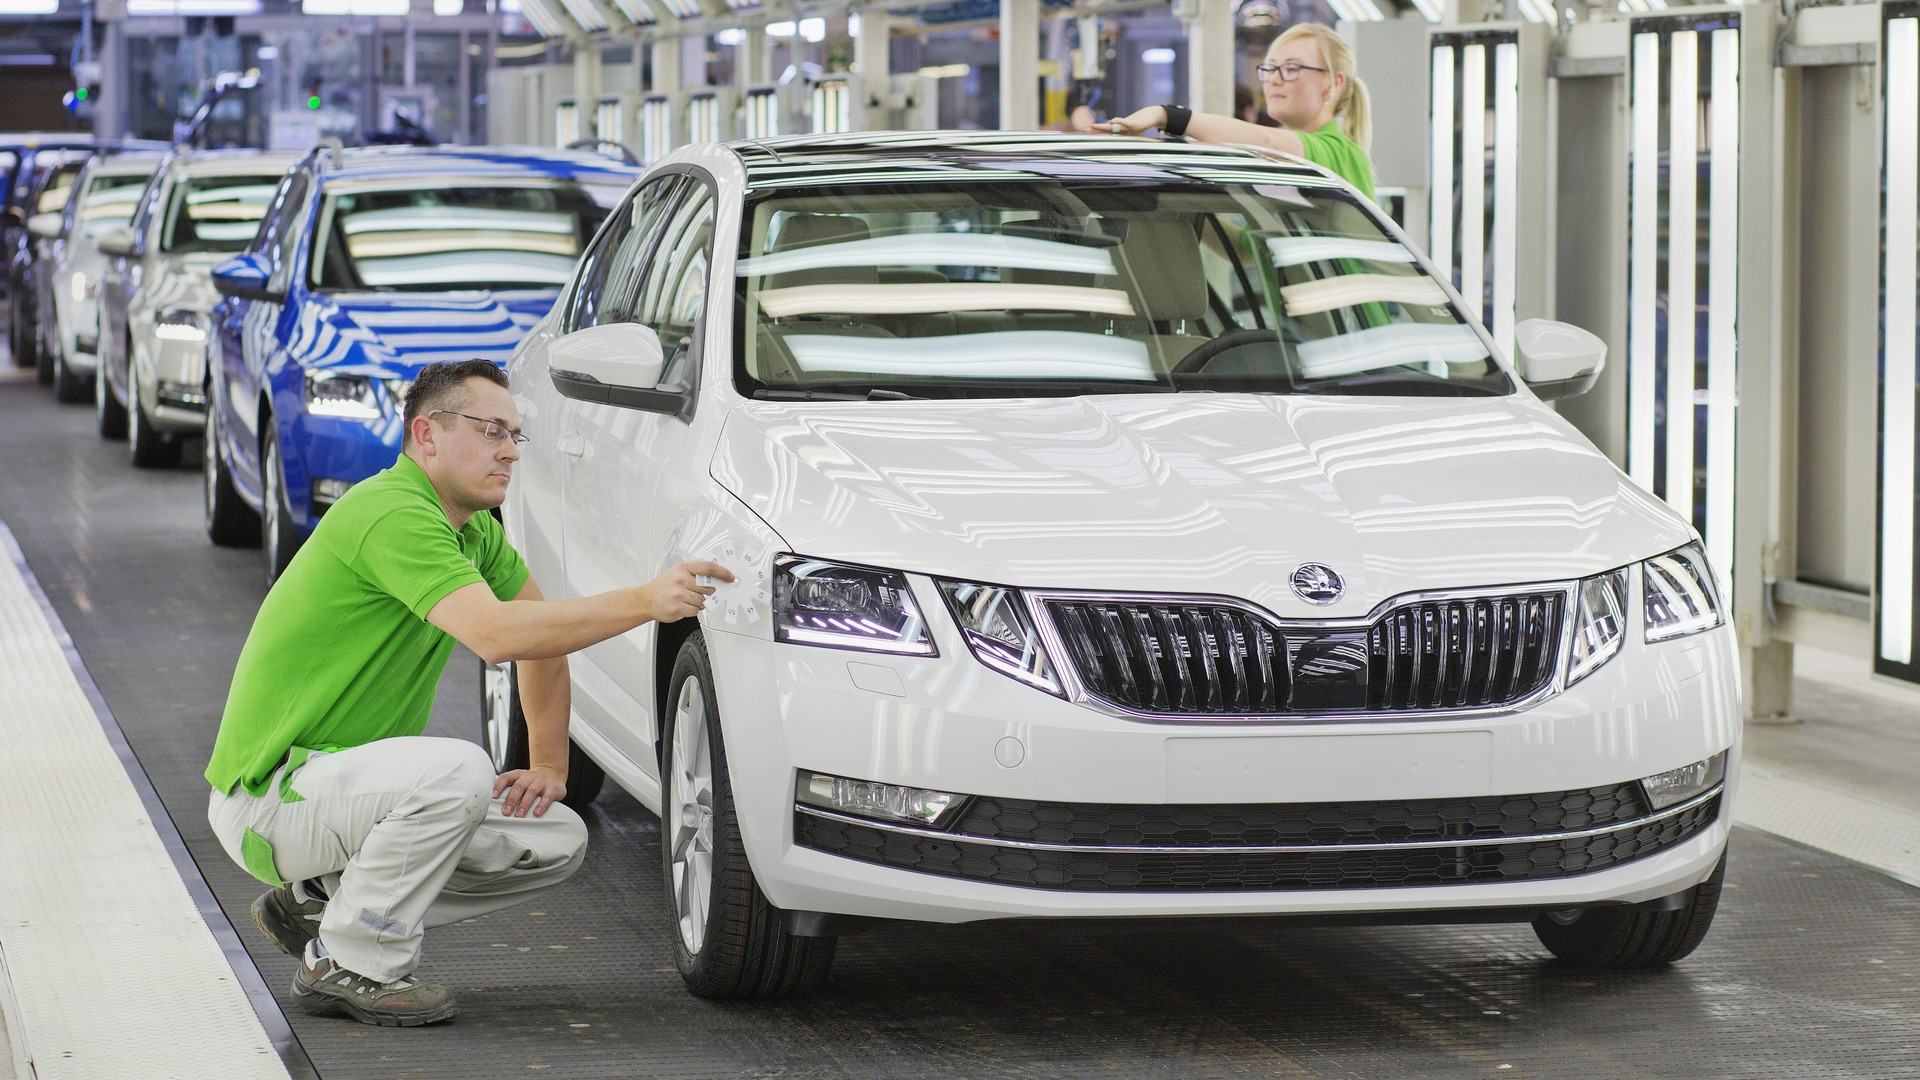 2017 Skoda Octavia facelift production gets rolling product 2017-02-08 12:07:01